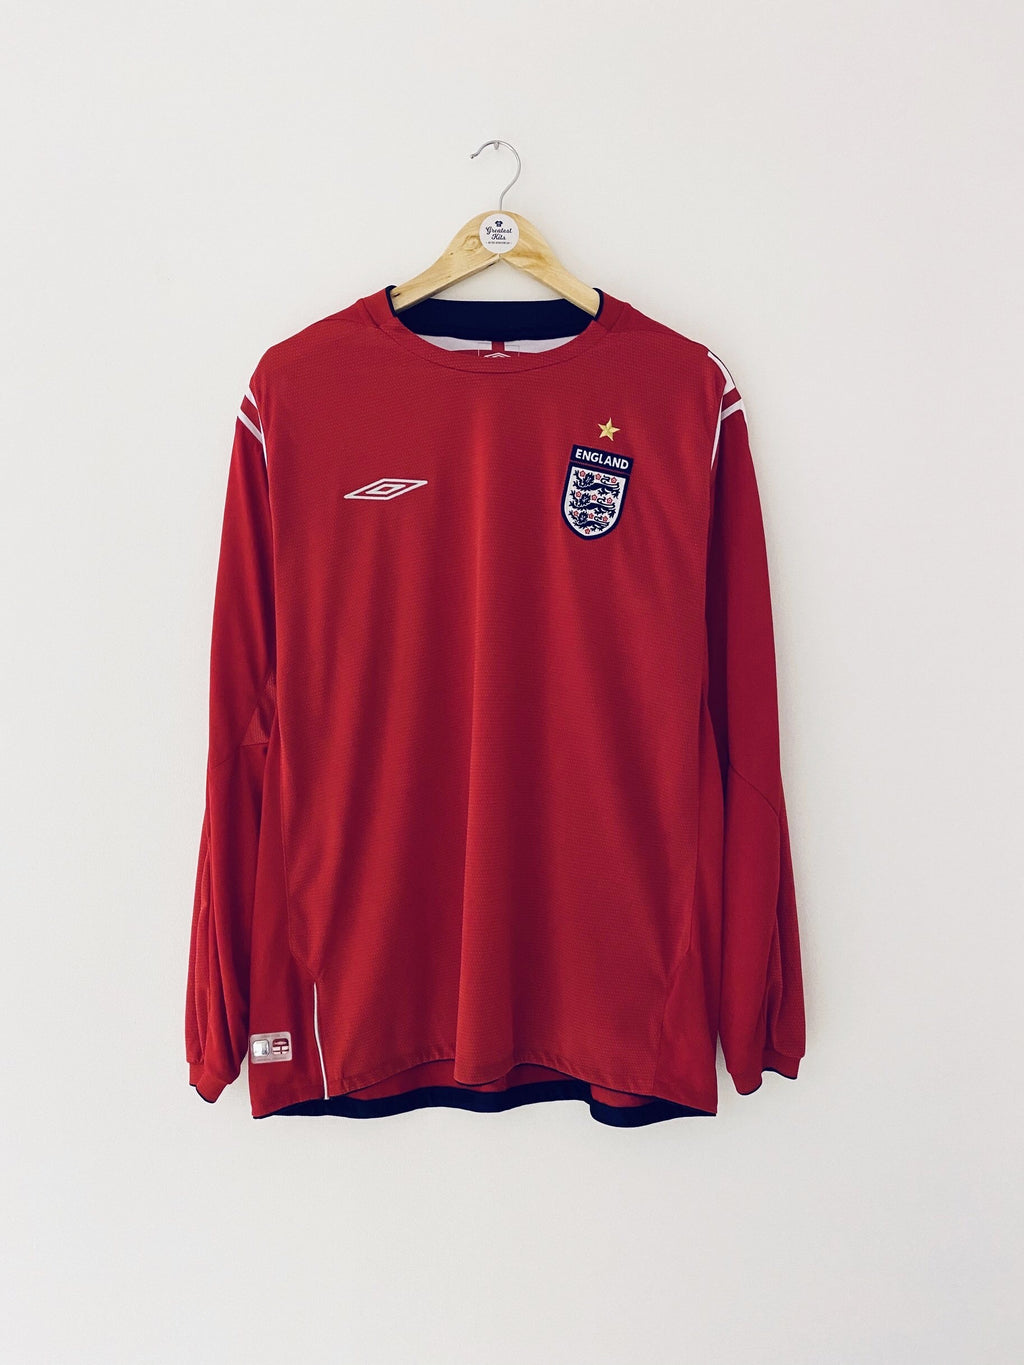 2004/06 England Away L/S Shirt (XL) 9/10